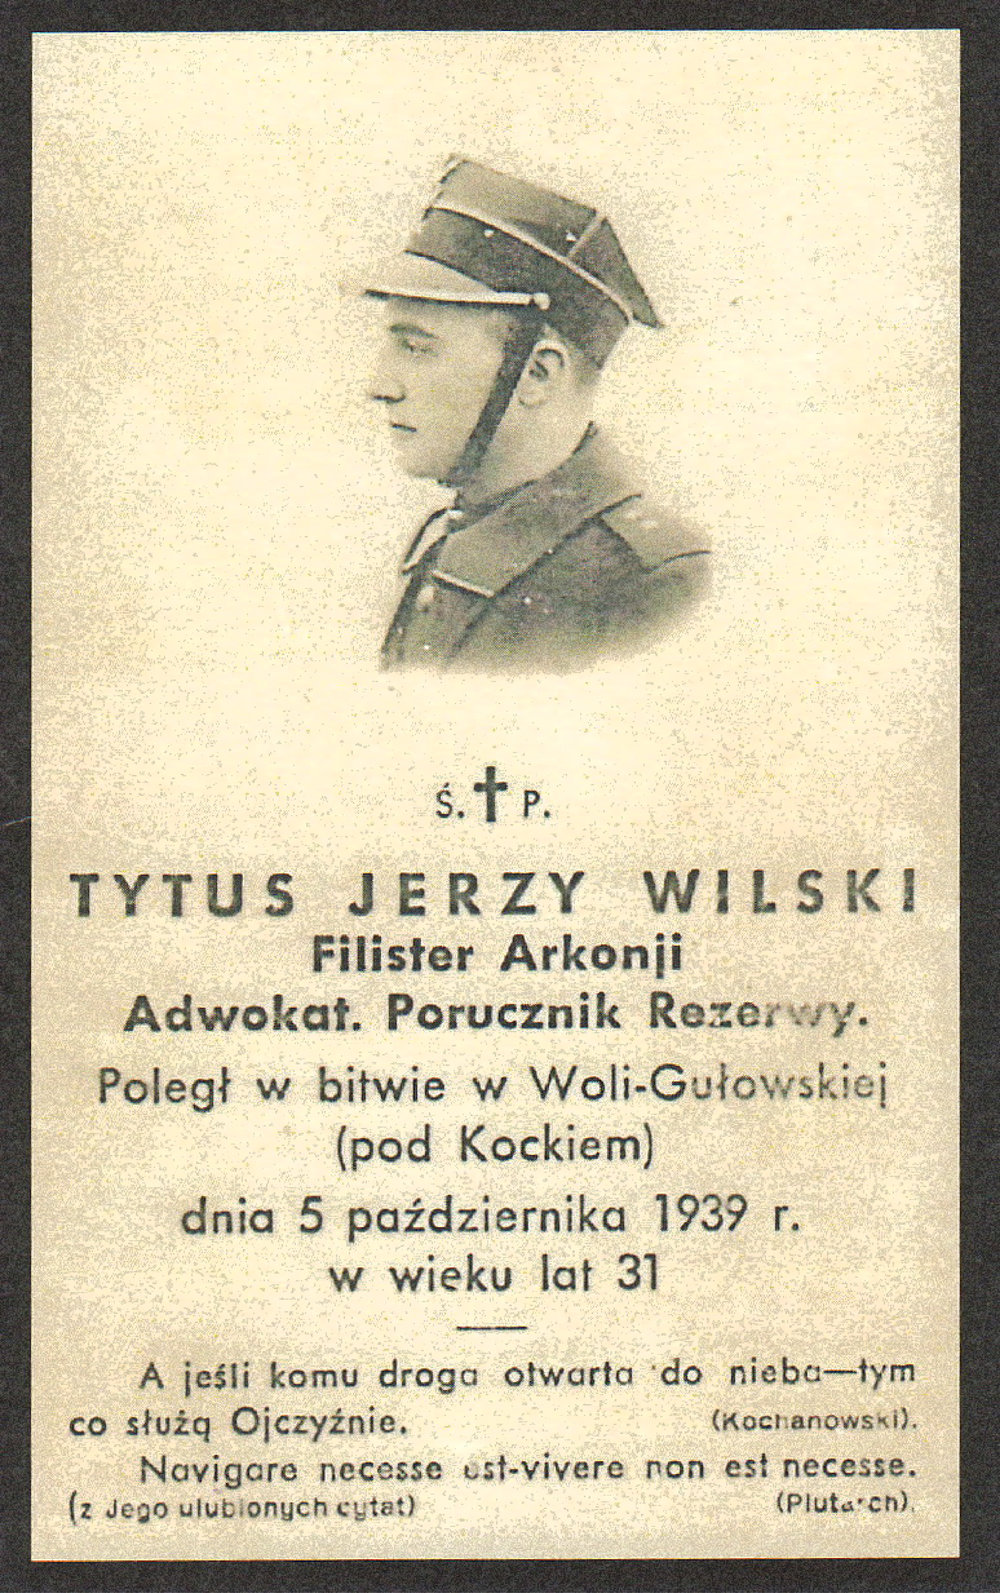 1939 - The untimely demise of Tytus Jerzy Wilski in the Battle of Kock, the last of Wilski Family at the Hall